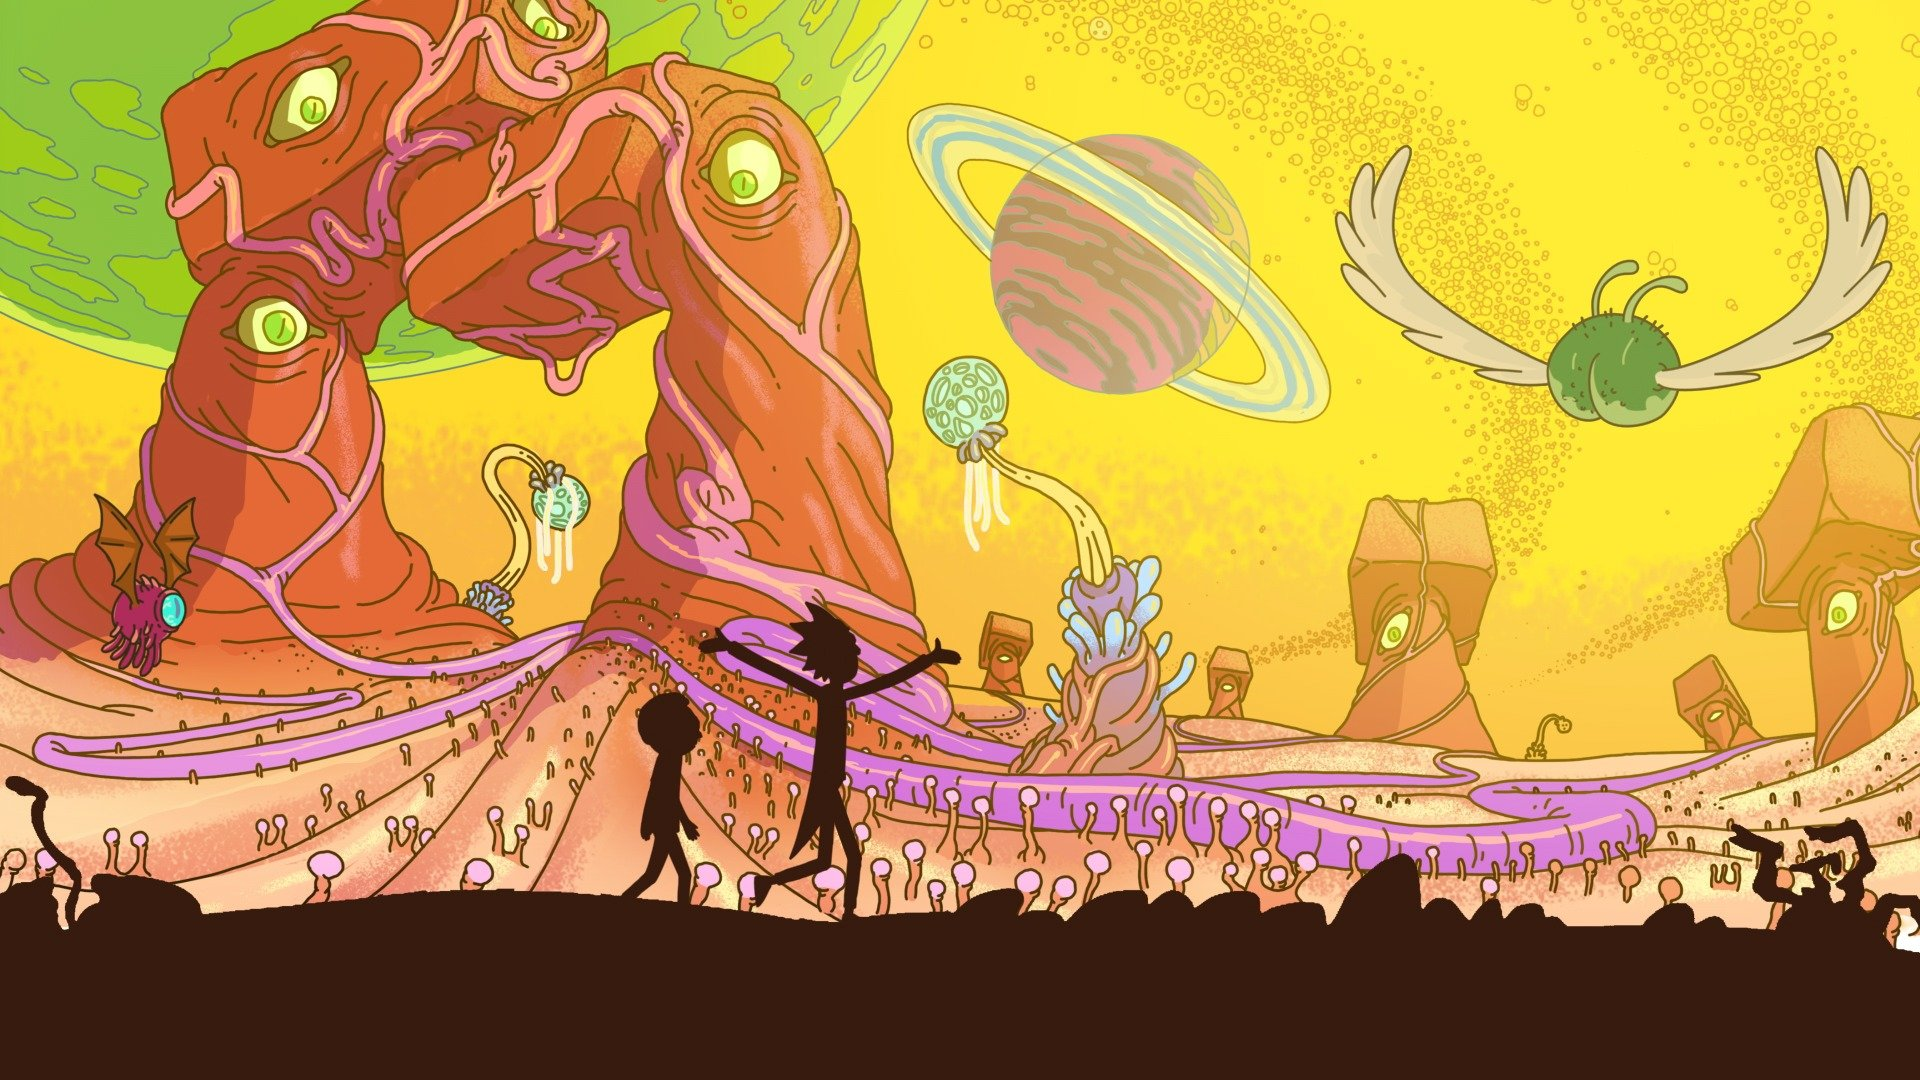 Rick And Morty Wallpapers 1920x1080 Full Hd 1080p Desktop